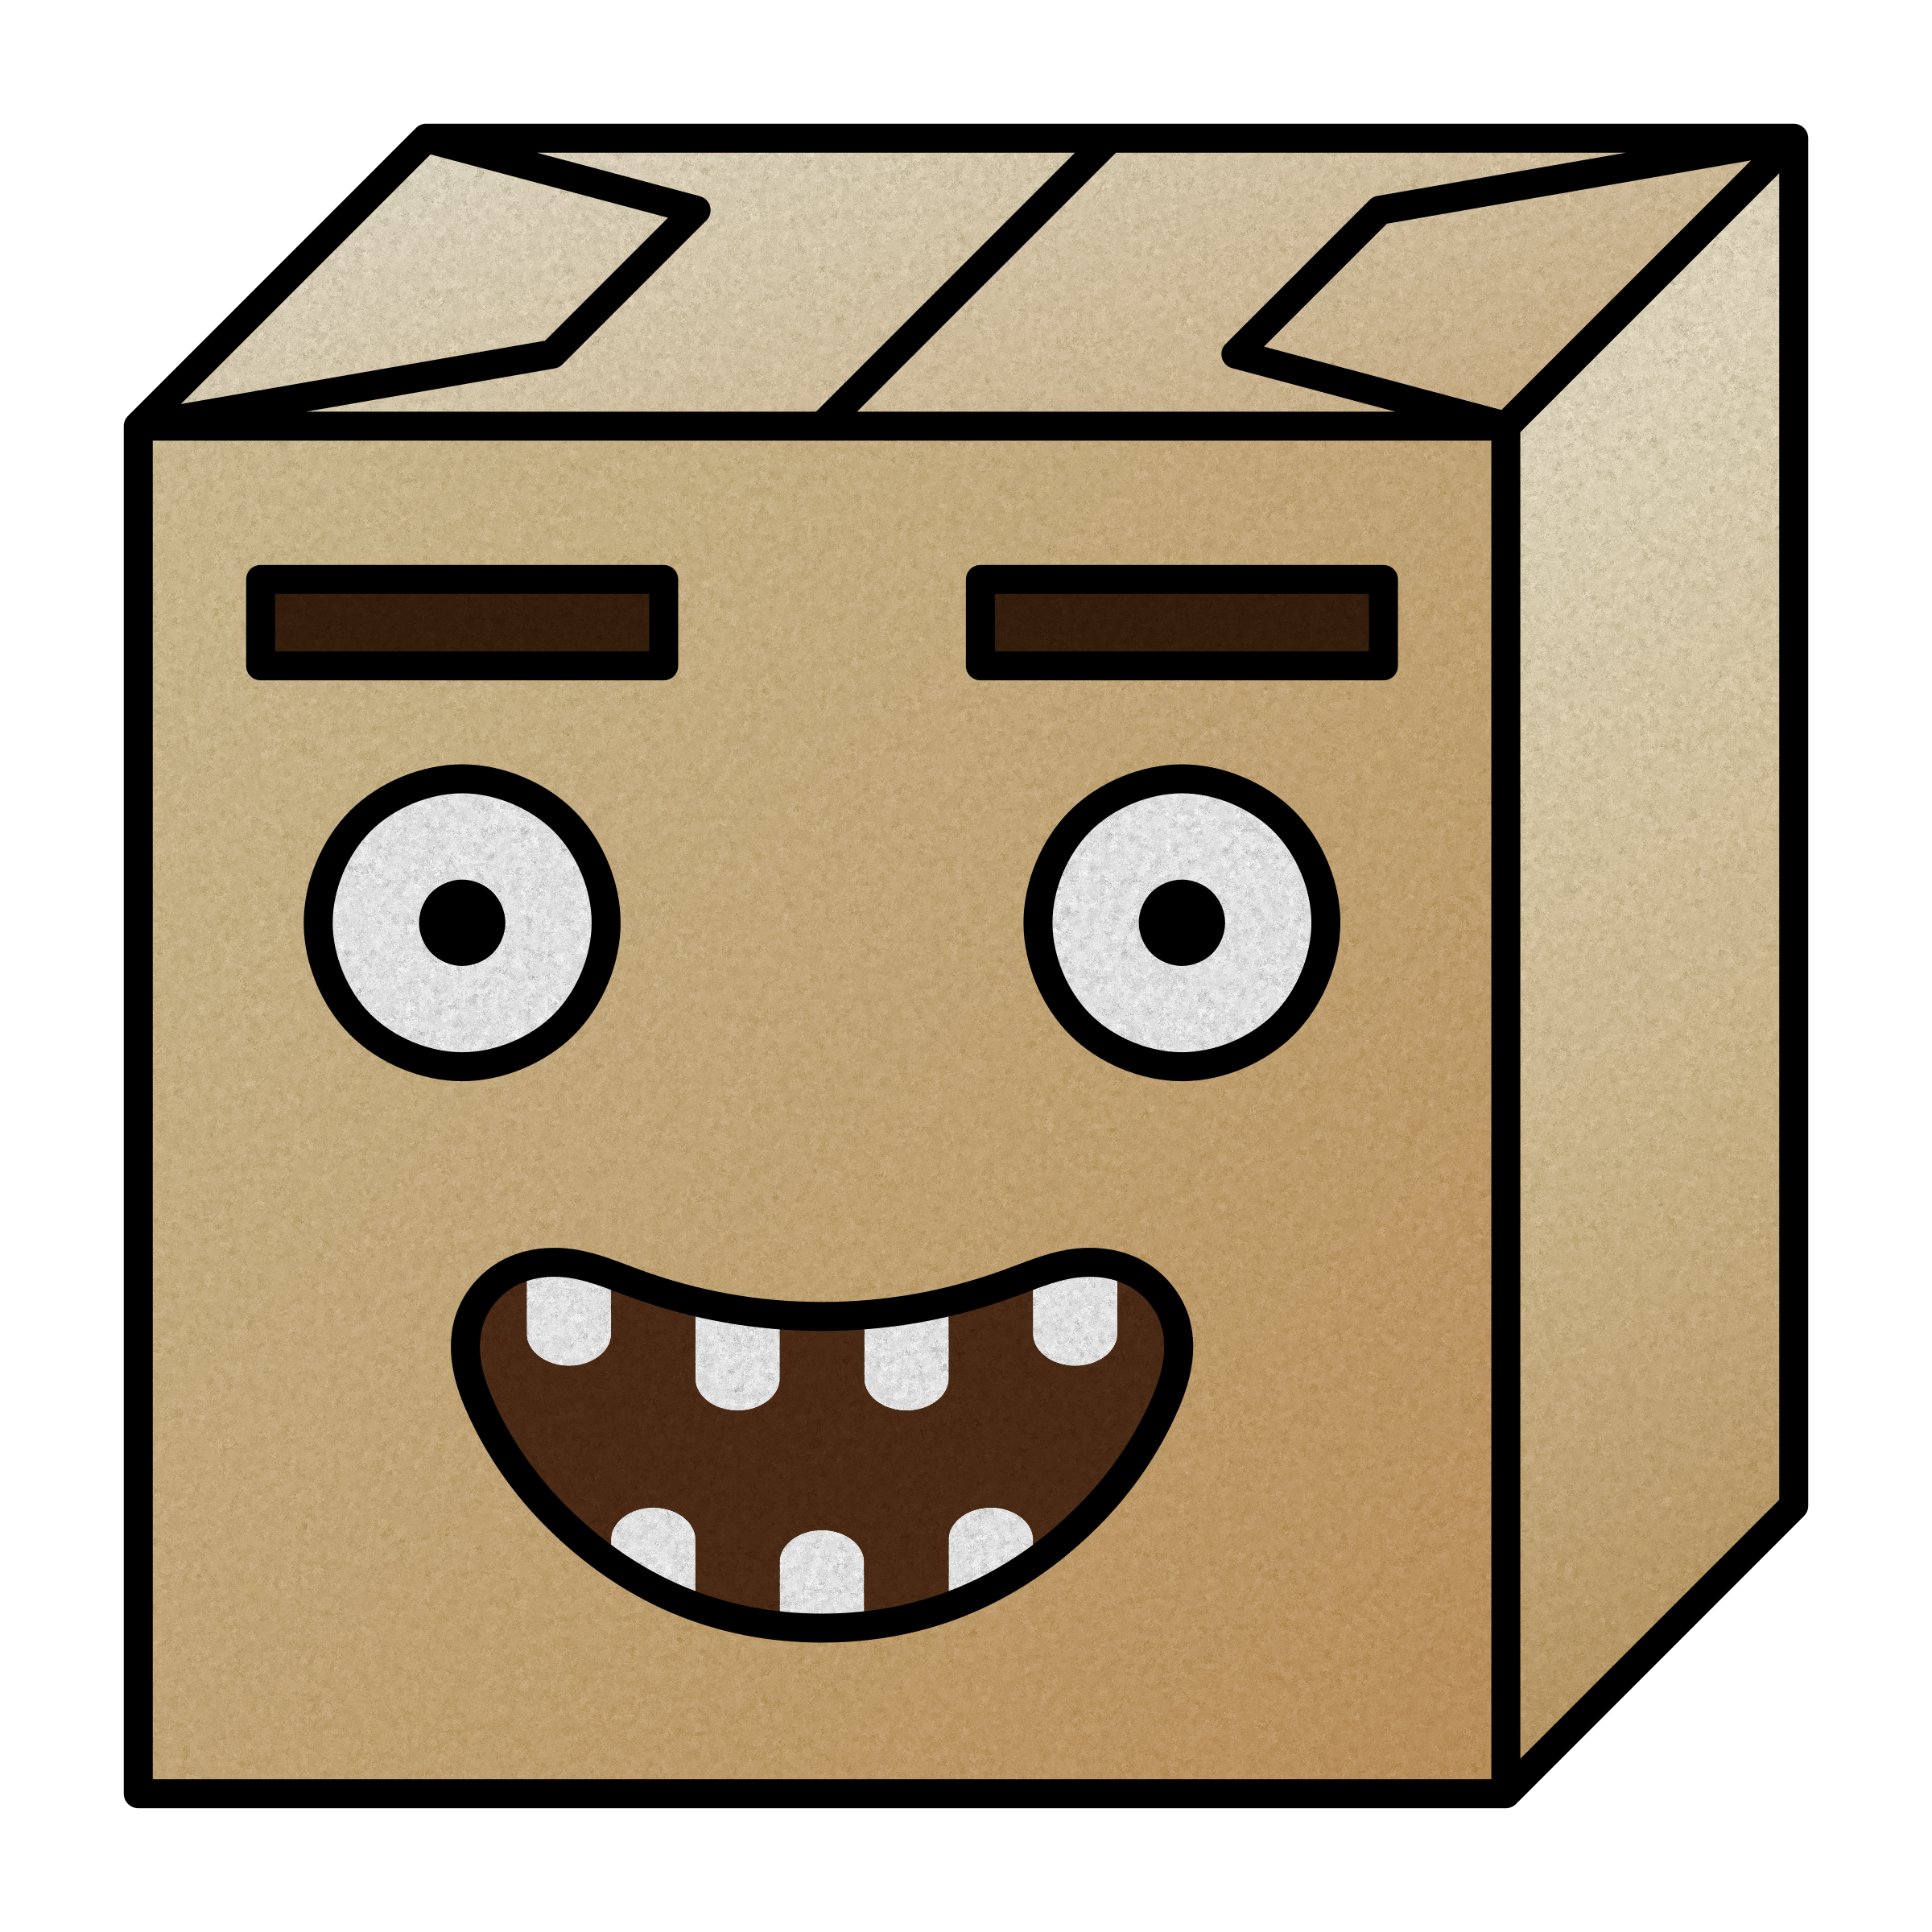 paper box head 3 by Lazur URH